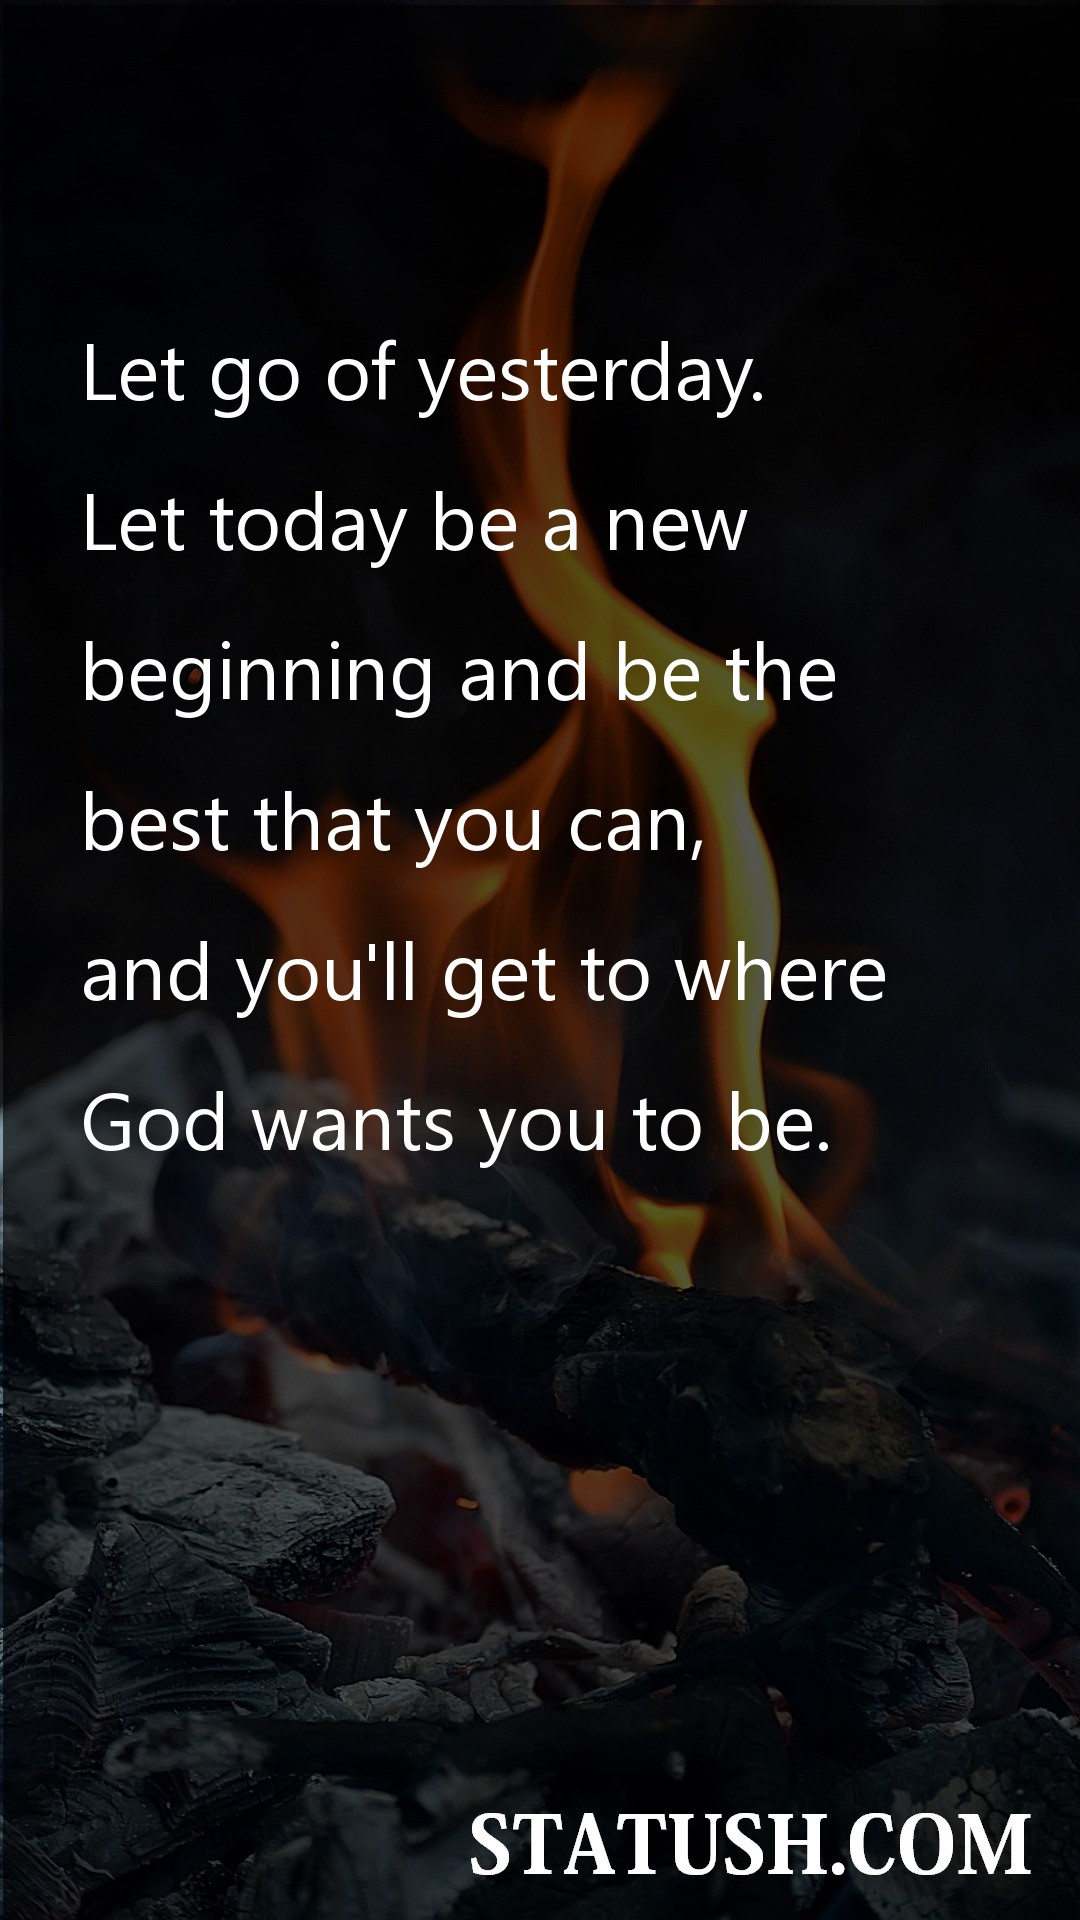 Let go of yesterday